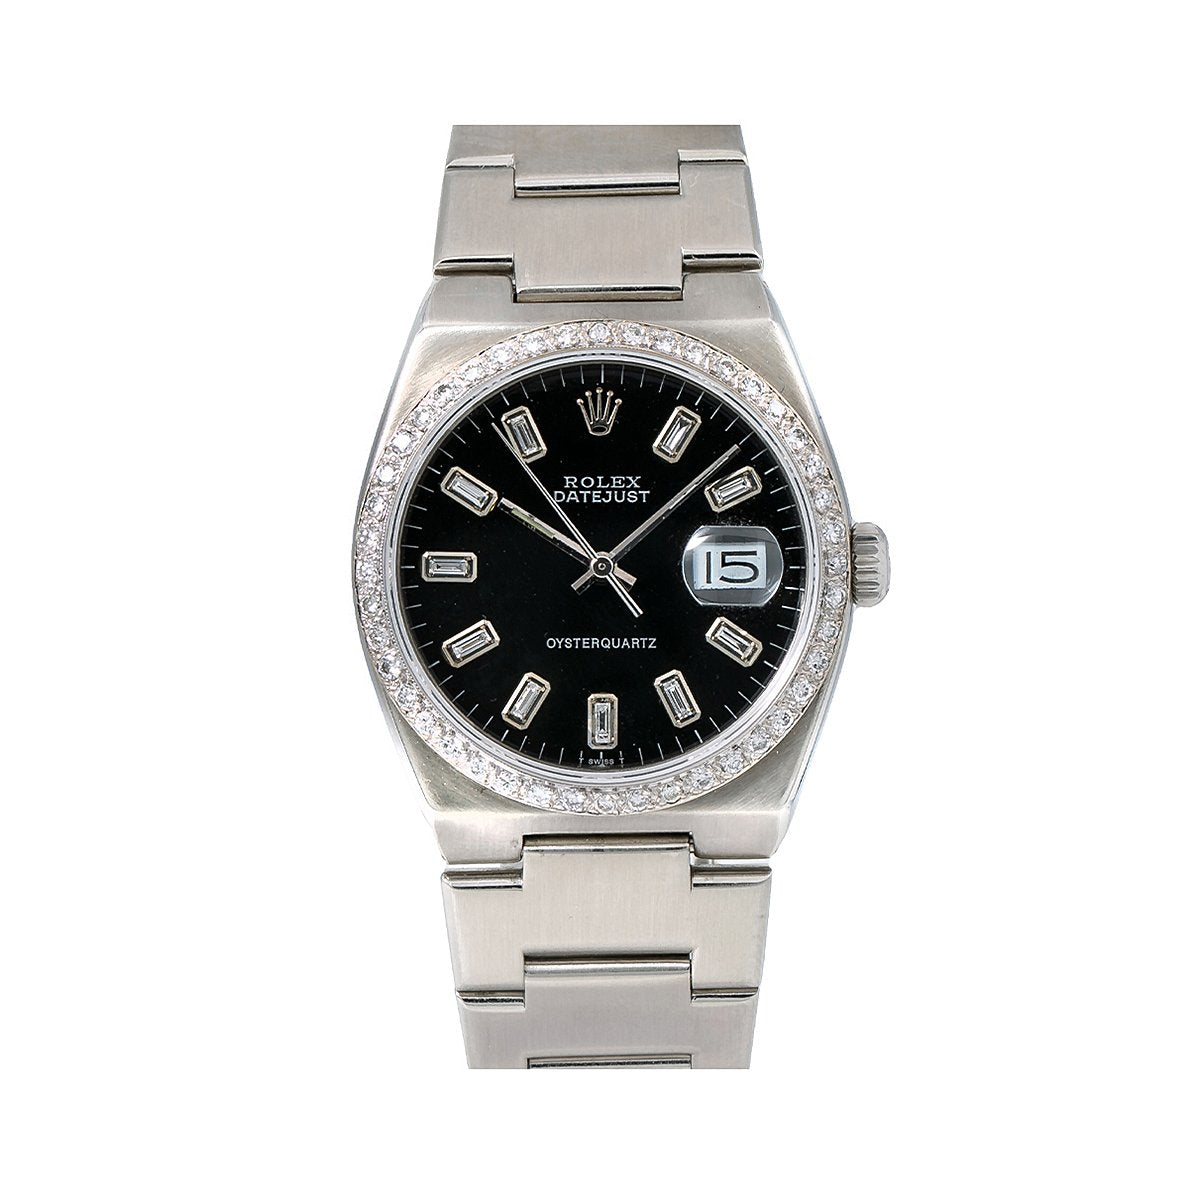 Rolex Datejust Diamond Watch, 17000 36mm, Black Diamond Dial With 1.25 CT Diamonds